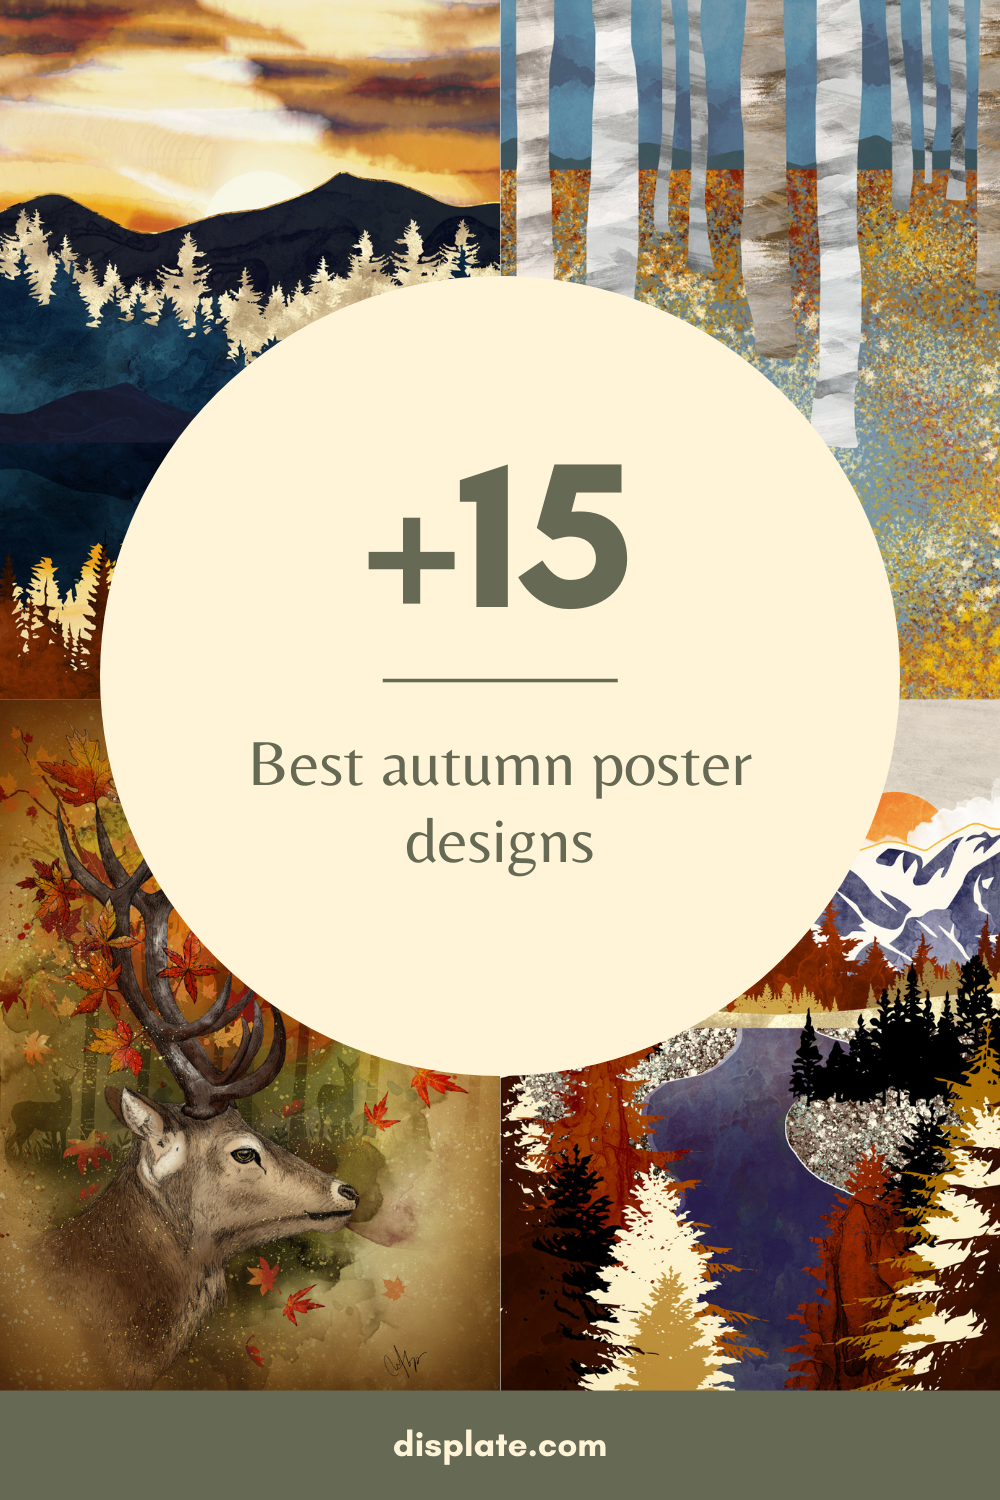 +10 Best autumn poster designs | Displate thumbnail